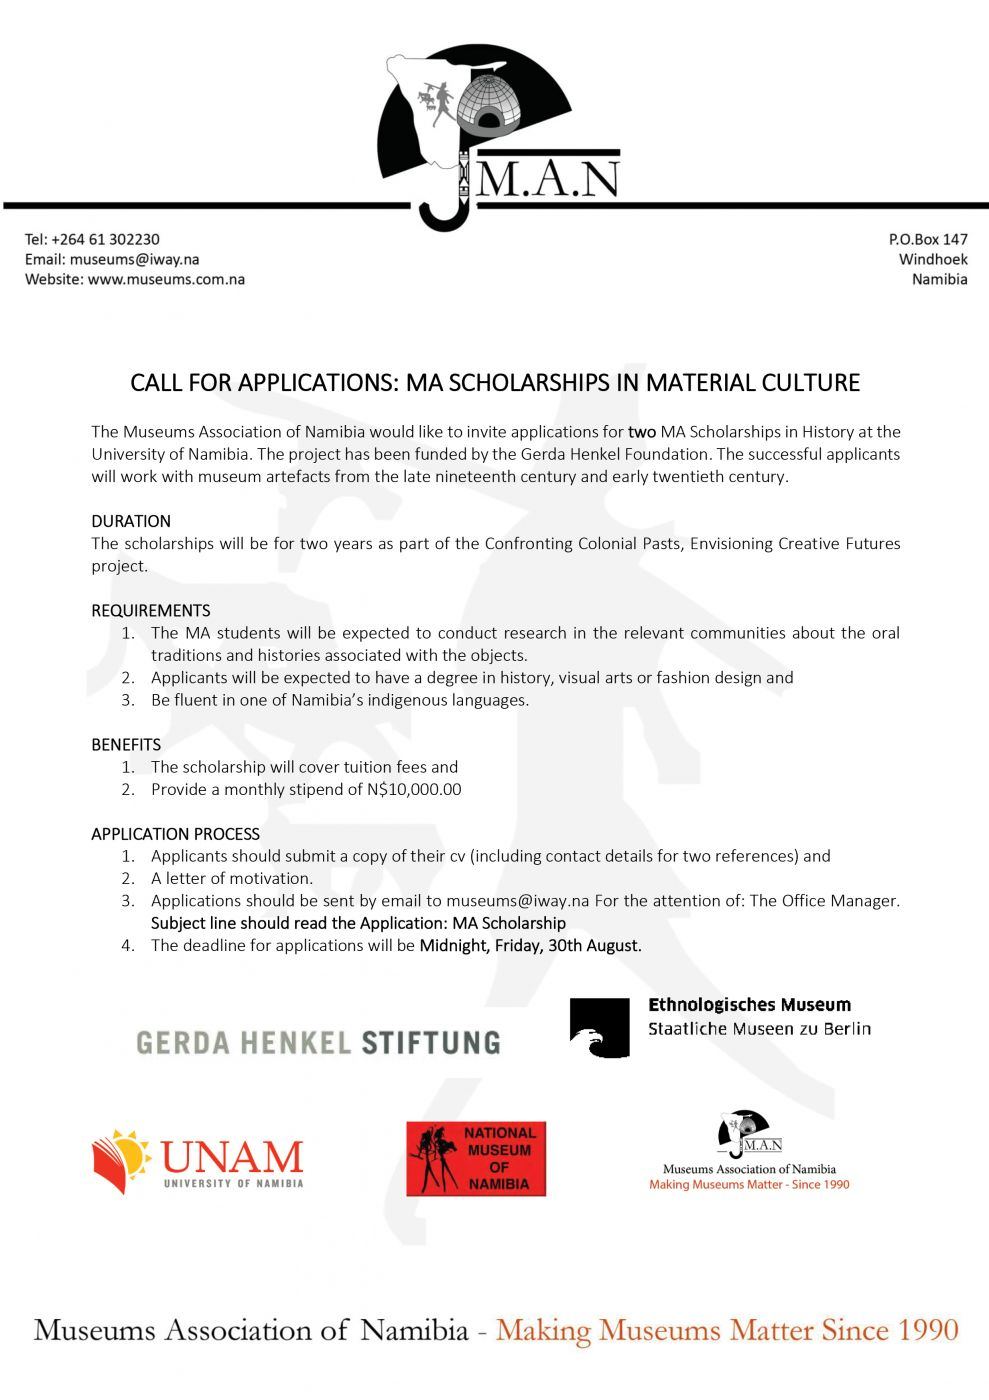 MA SCHOLARSHIPS IN MATERIAL CULTURE